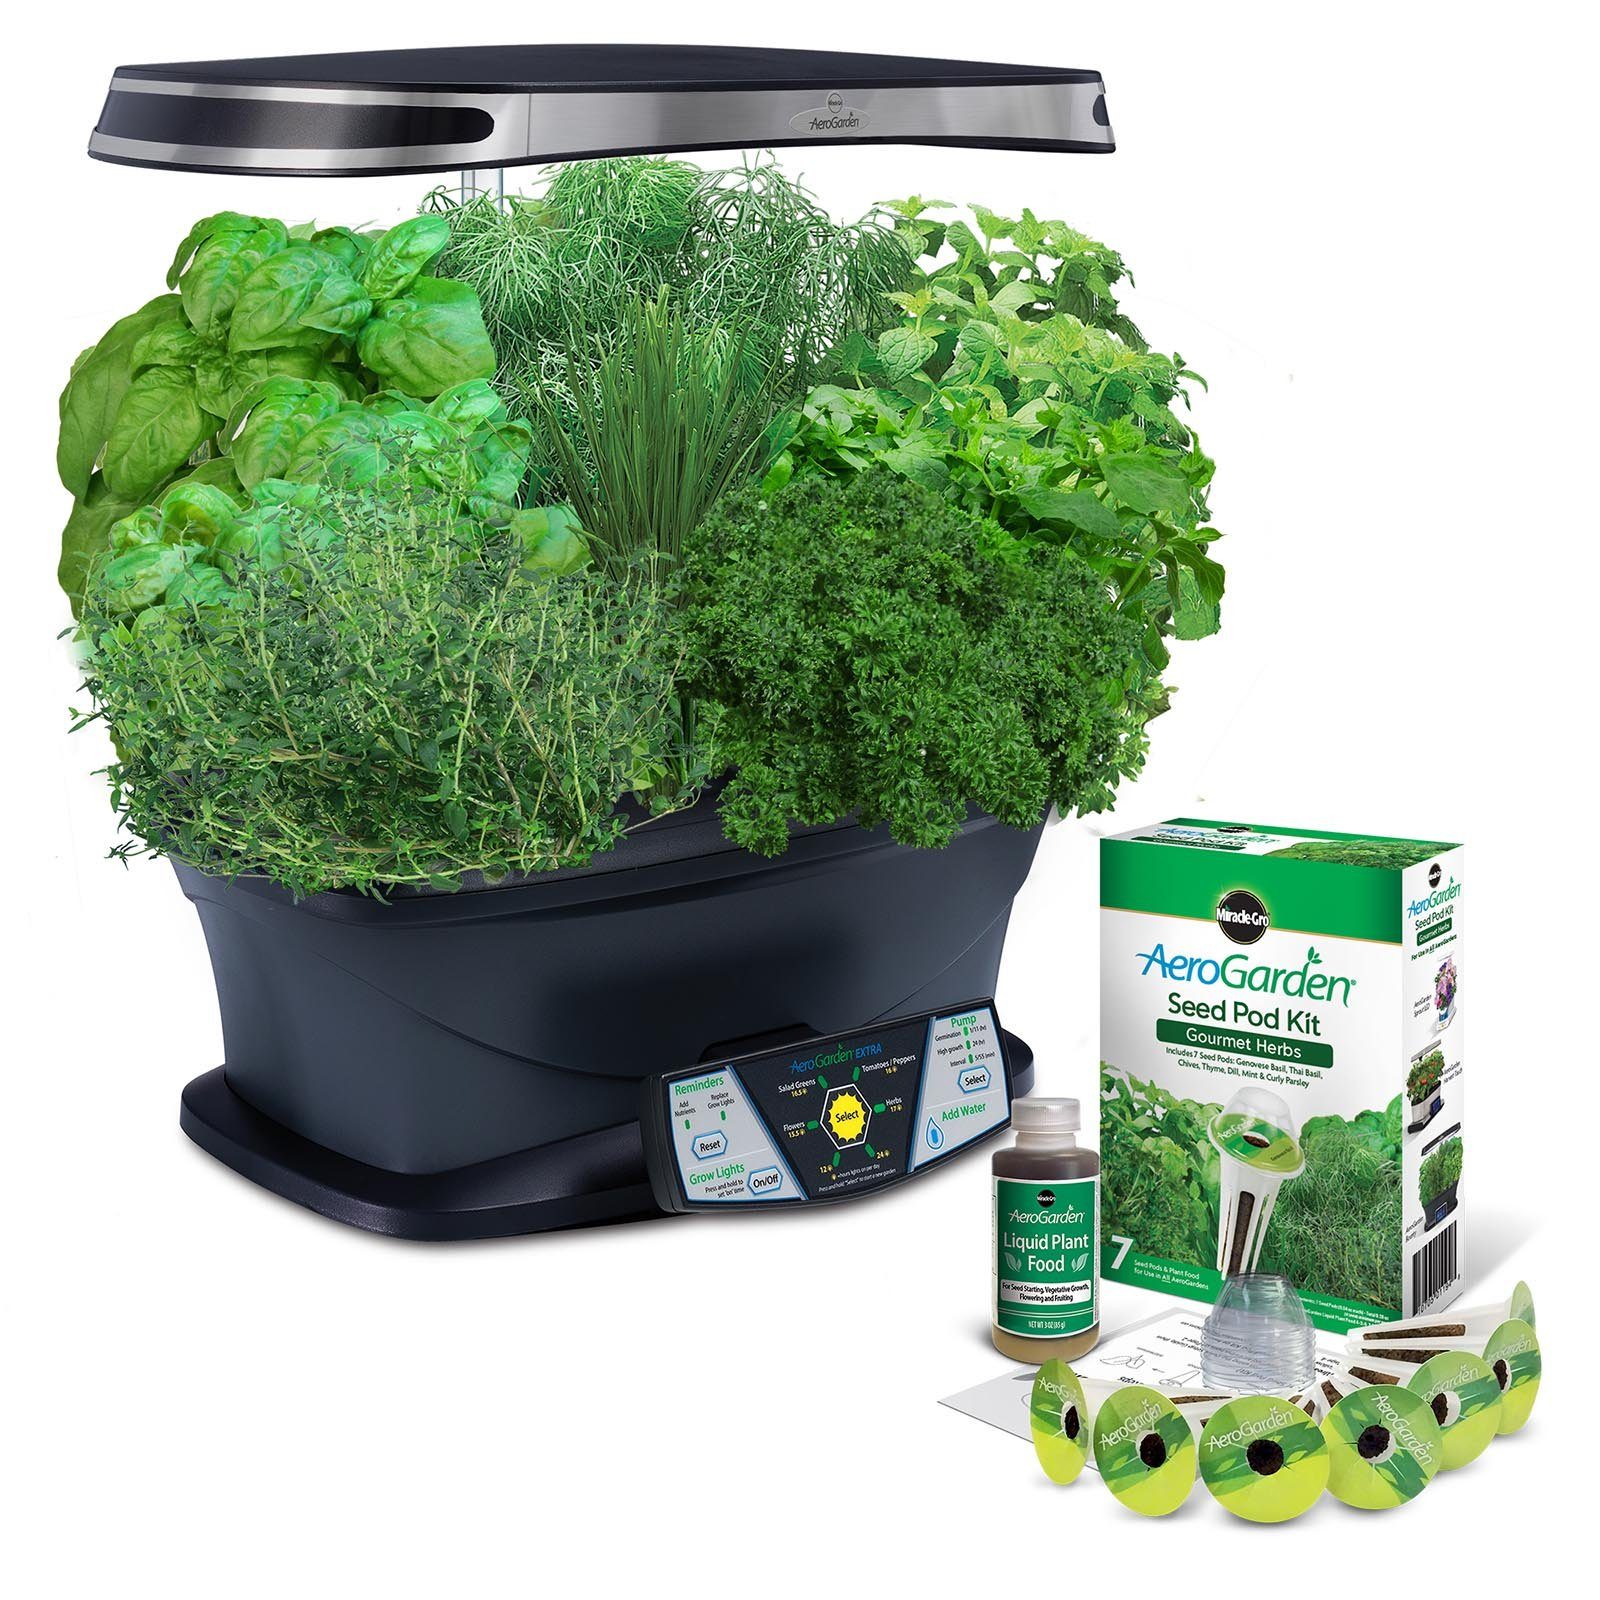 AeroGarden Extra (LED) with Gourmet Herb Seed Pod Kit by AeroGrow